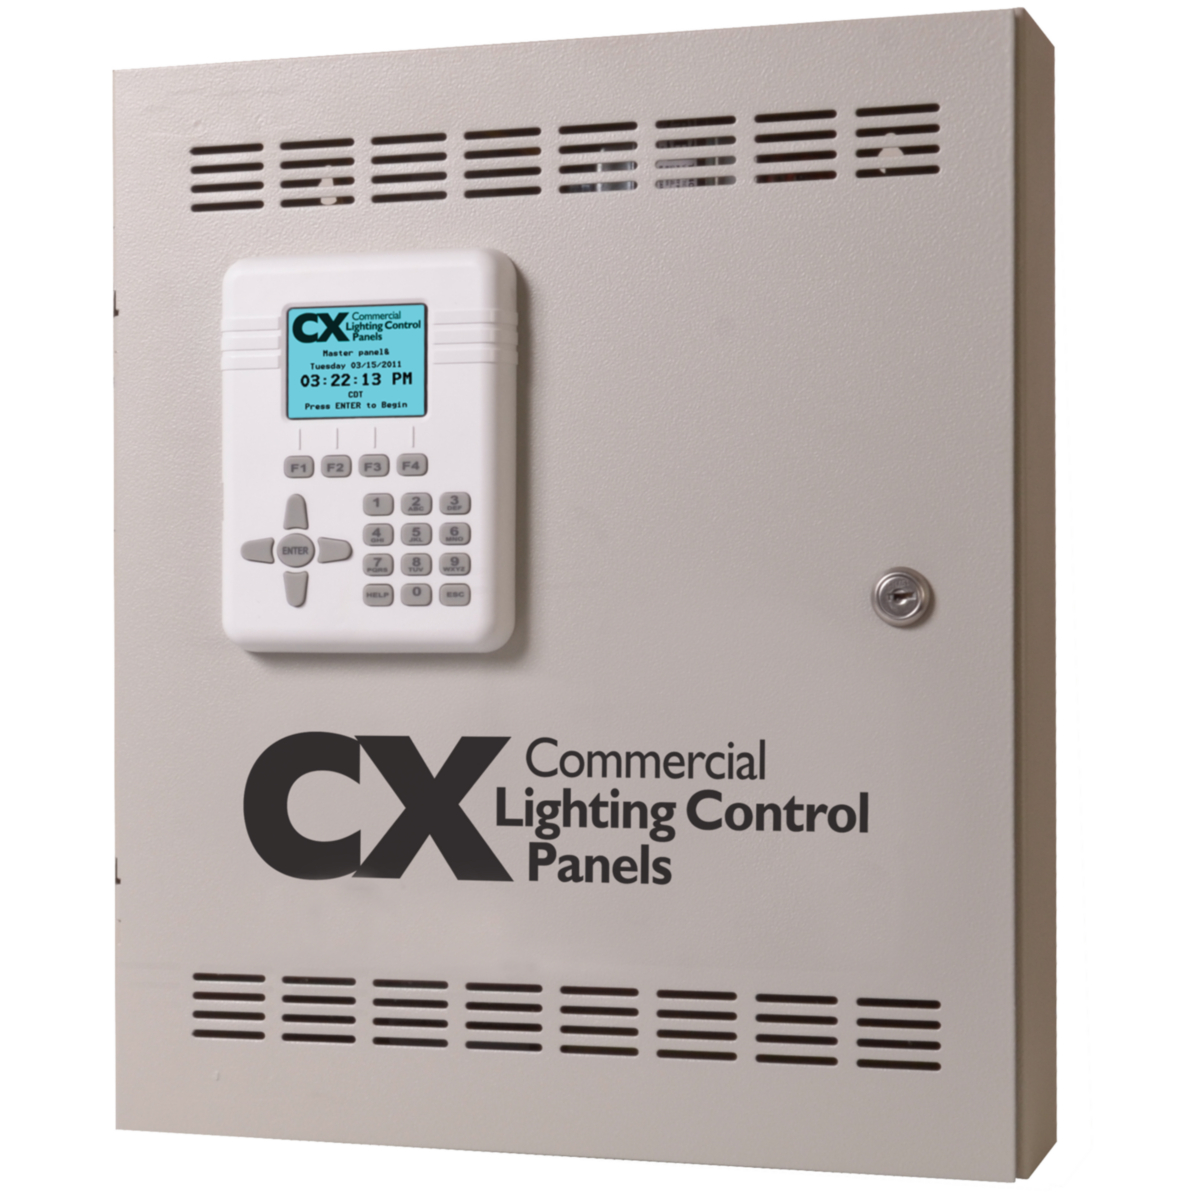 Cx Lighting Control Panels 16 And 24 Relays Brand Hubbell 3 Lamp Emergency Ballast Wiring Diagram Hcs Cx04 Panel Jmk1192 Prodimage